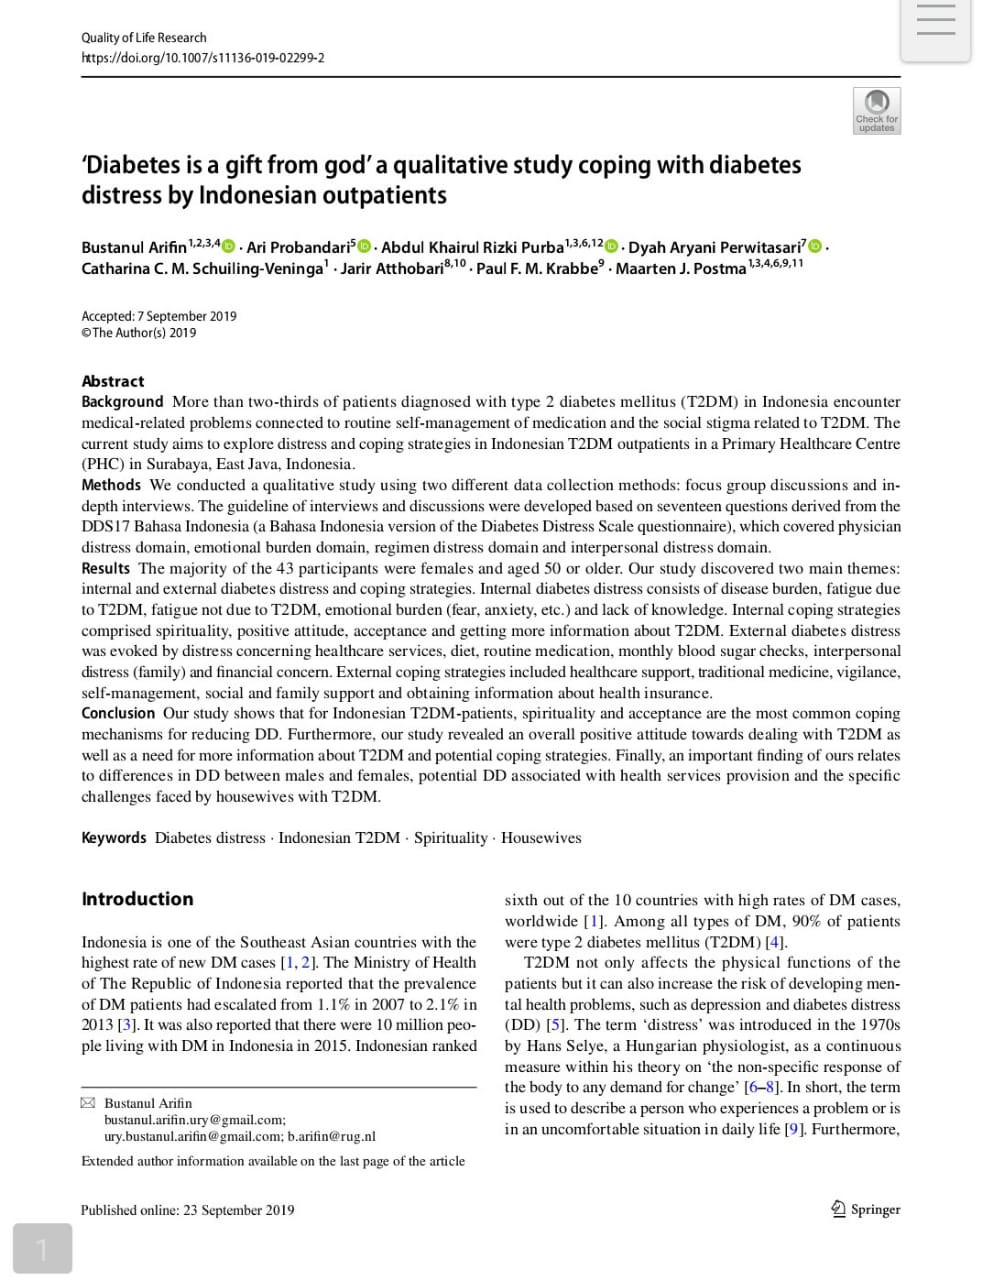 'Diabetes is a gift from god' a qualitative study coping with diabetes distress by Indonesian outpatients : Pubikasi Ilmiah Kepala Program Studi S3 IKM UNS Ari Natalia Probandari, dr, MPH, PhD